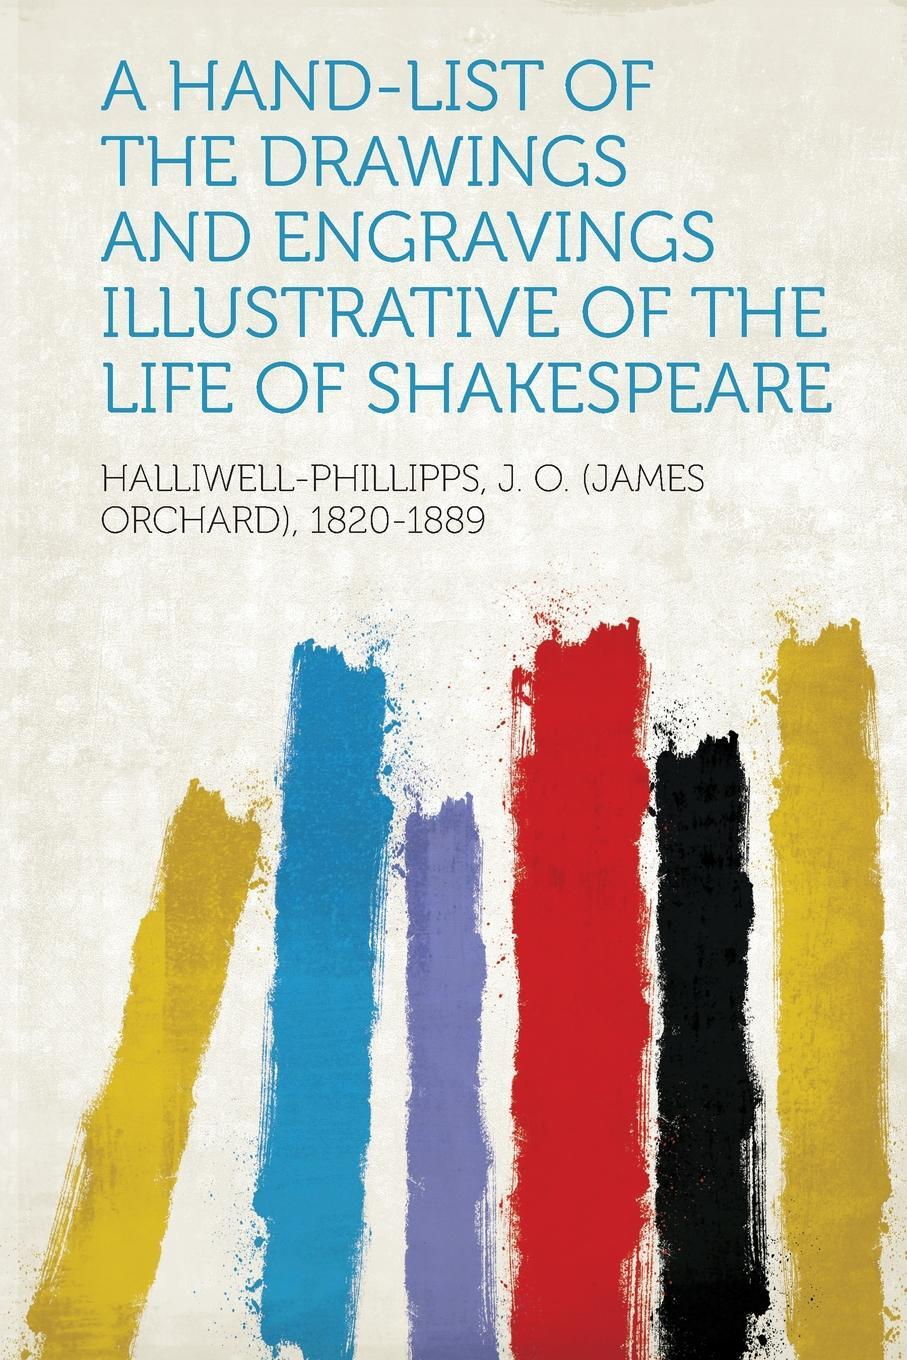 A Hand-List of the Drawings and Engravings Illustrative of the Life of Shakespeare